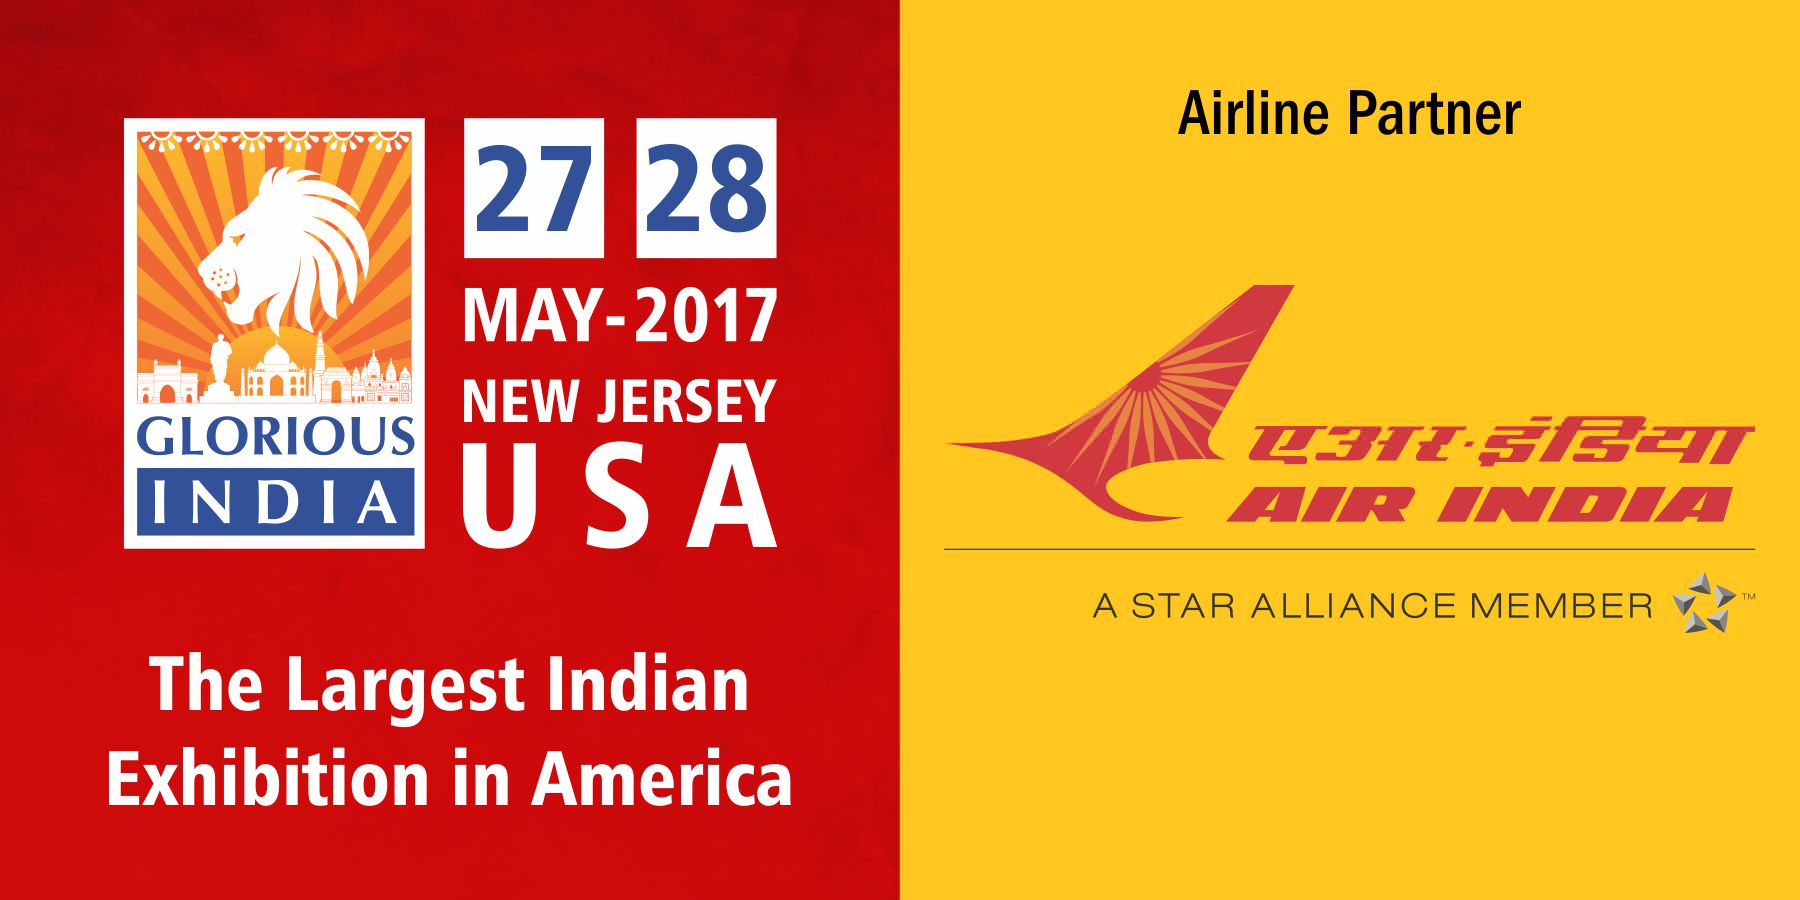 Glorious India Expo - Air India as the Airline Partner